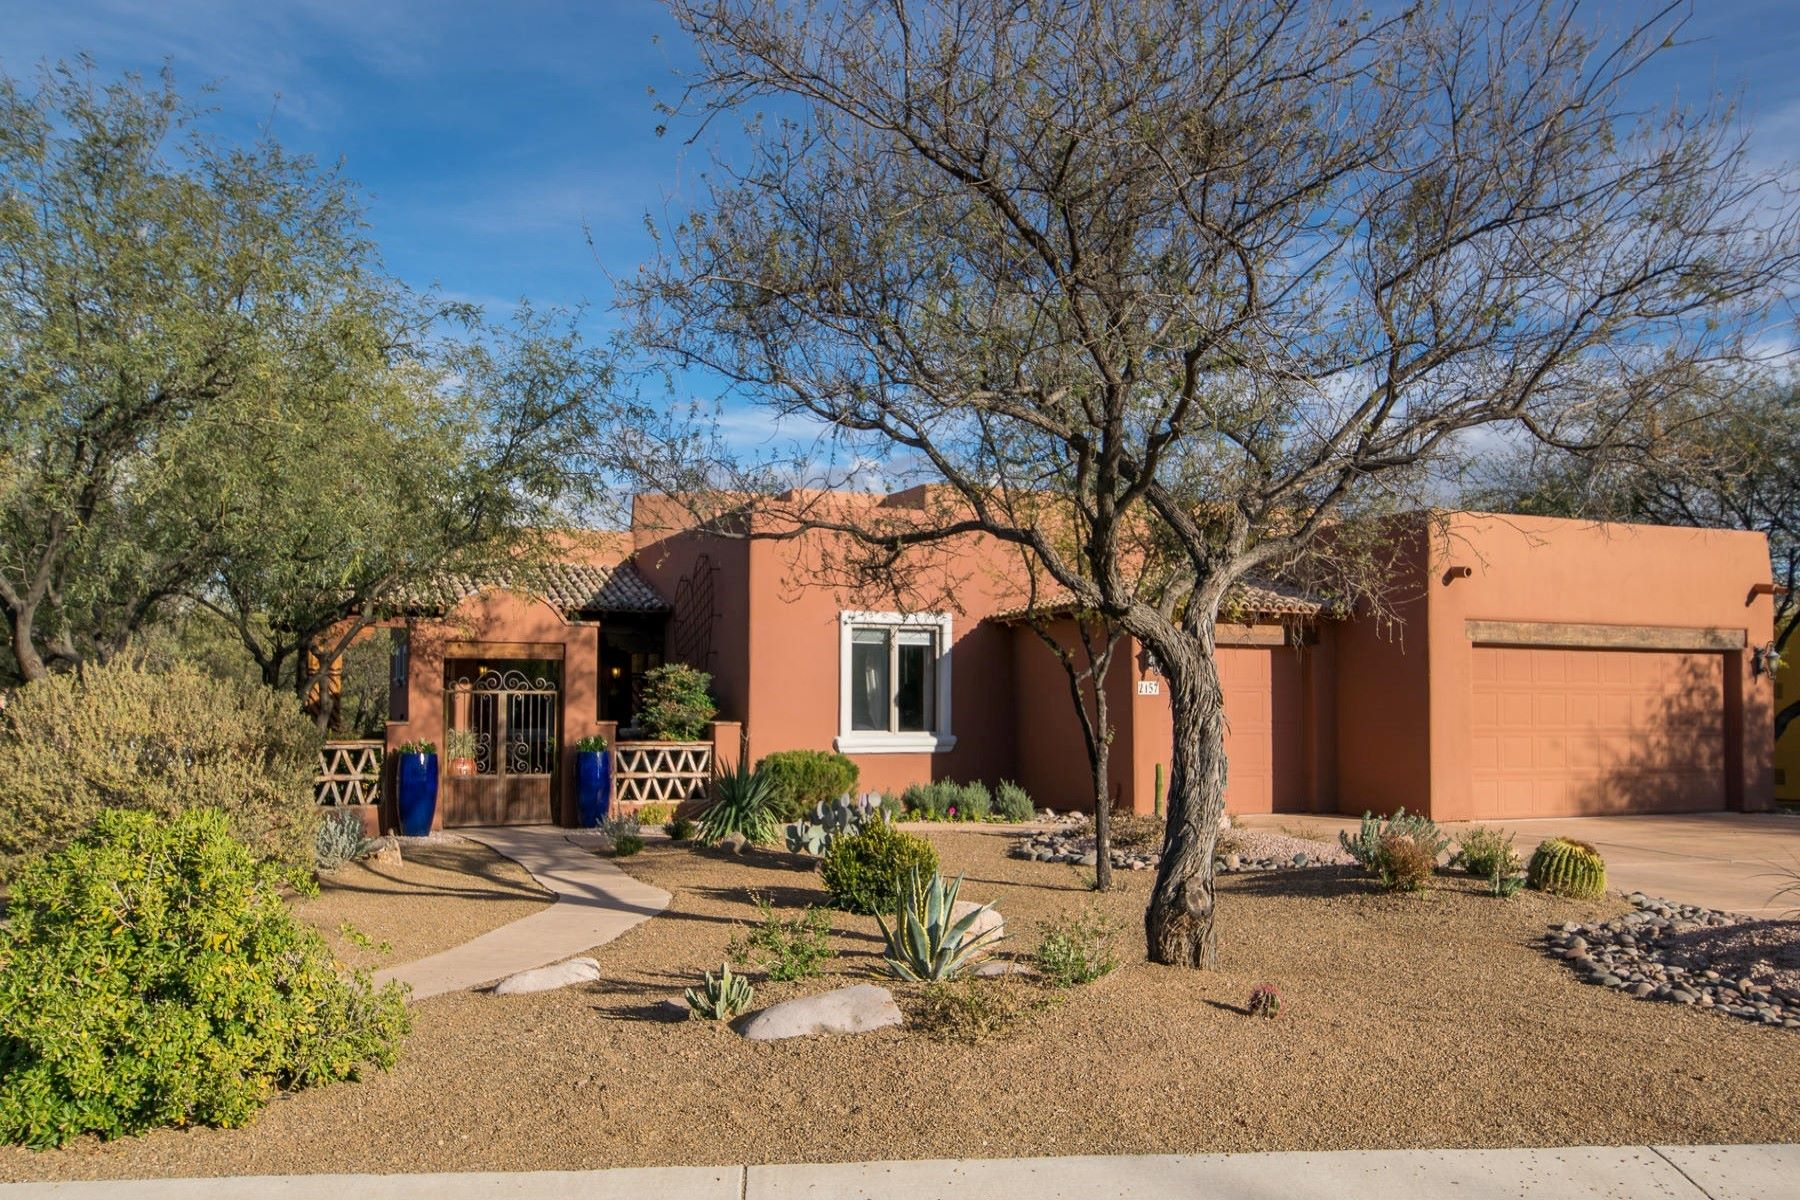 Single Family Home for Sale at Spectacular home on 1/3 acre 2157 Bautista Court, Tubac, Arizona, 85646 United States